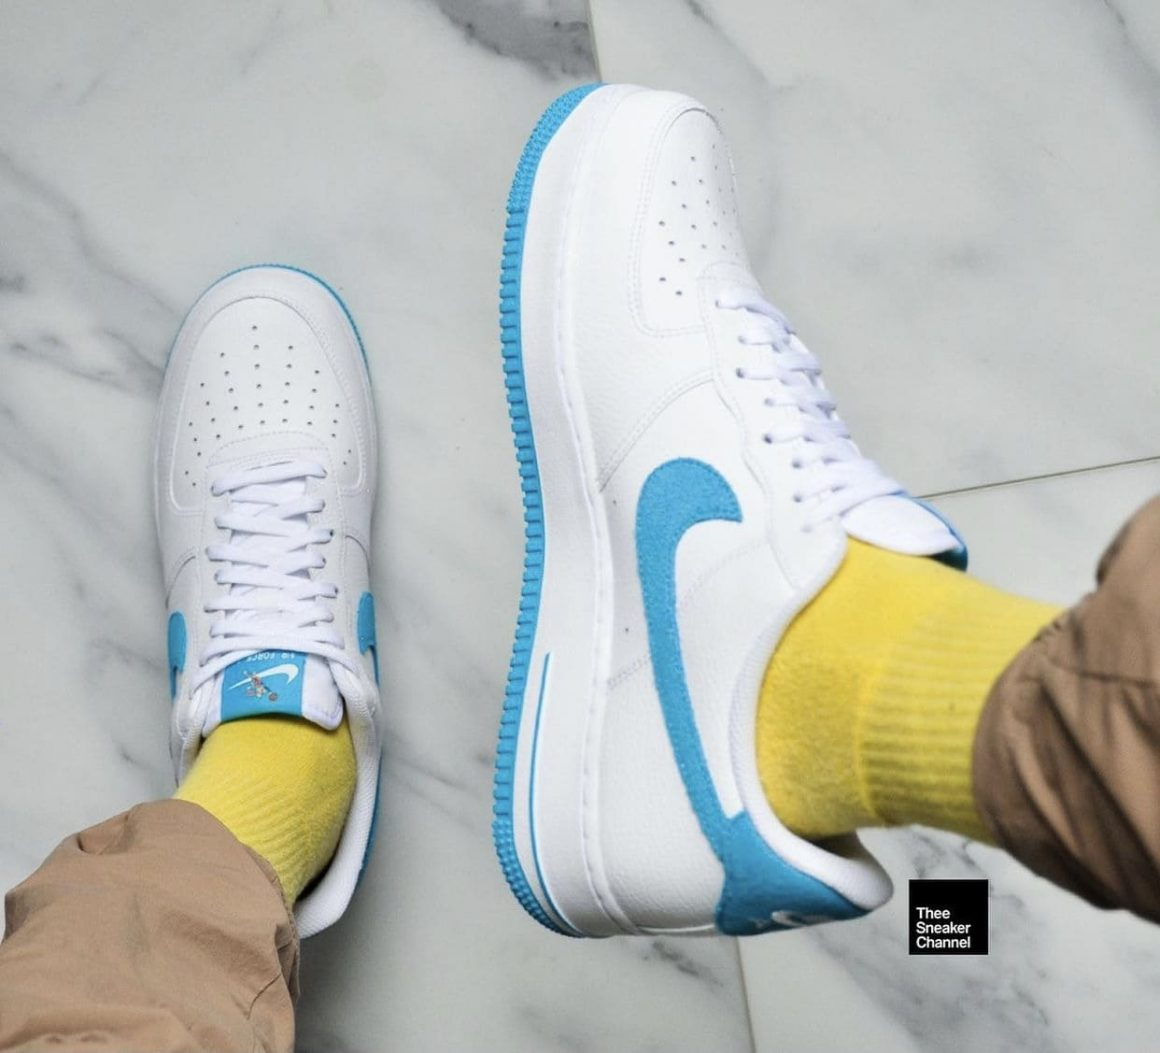 Space Jam x Nike Air Force 1 Low Hare On Feet Topview